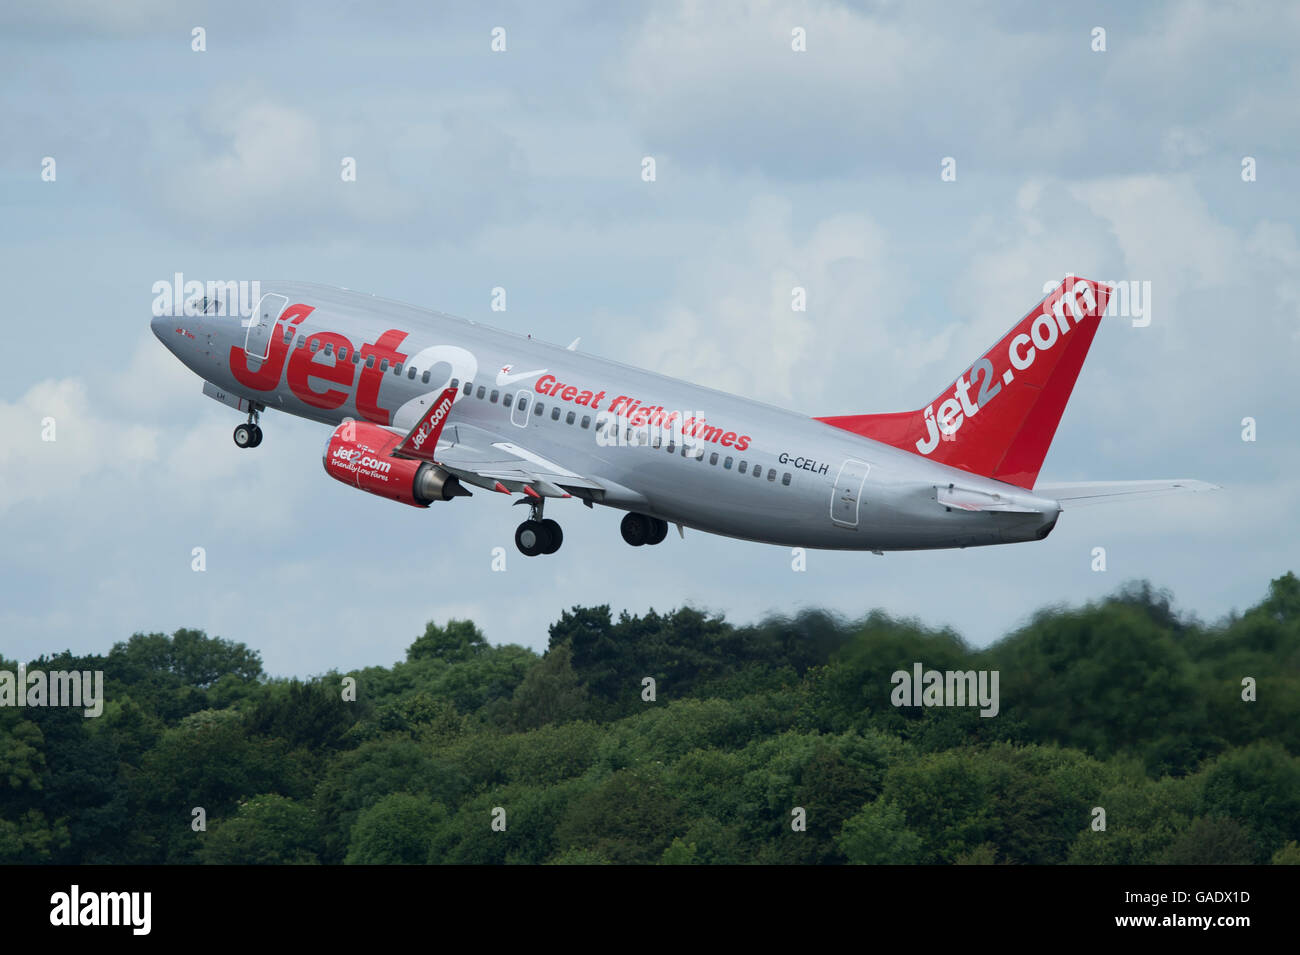 A Jet2 Boeing 737 takes off from Manchester International Airport (Editorial use only) - Stock Image